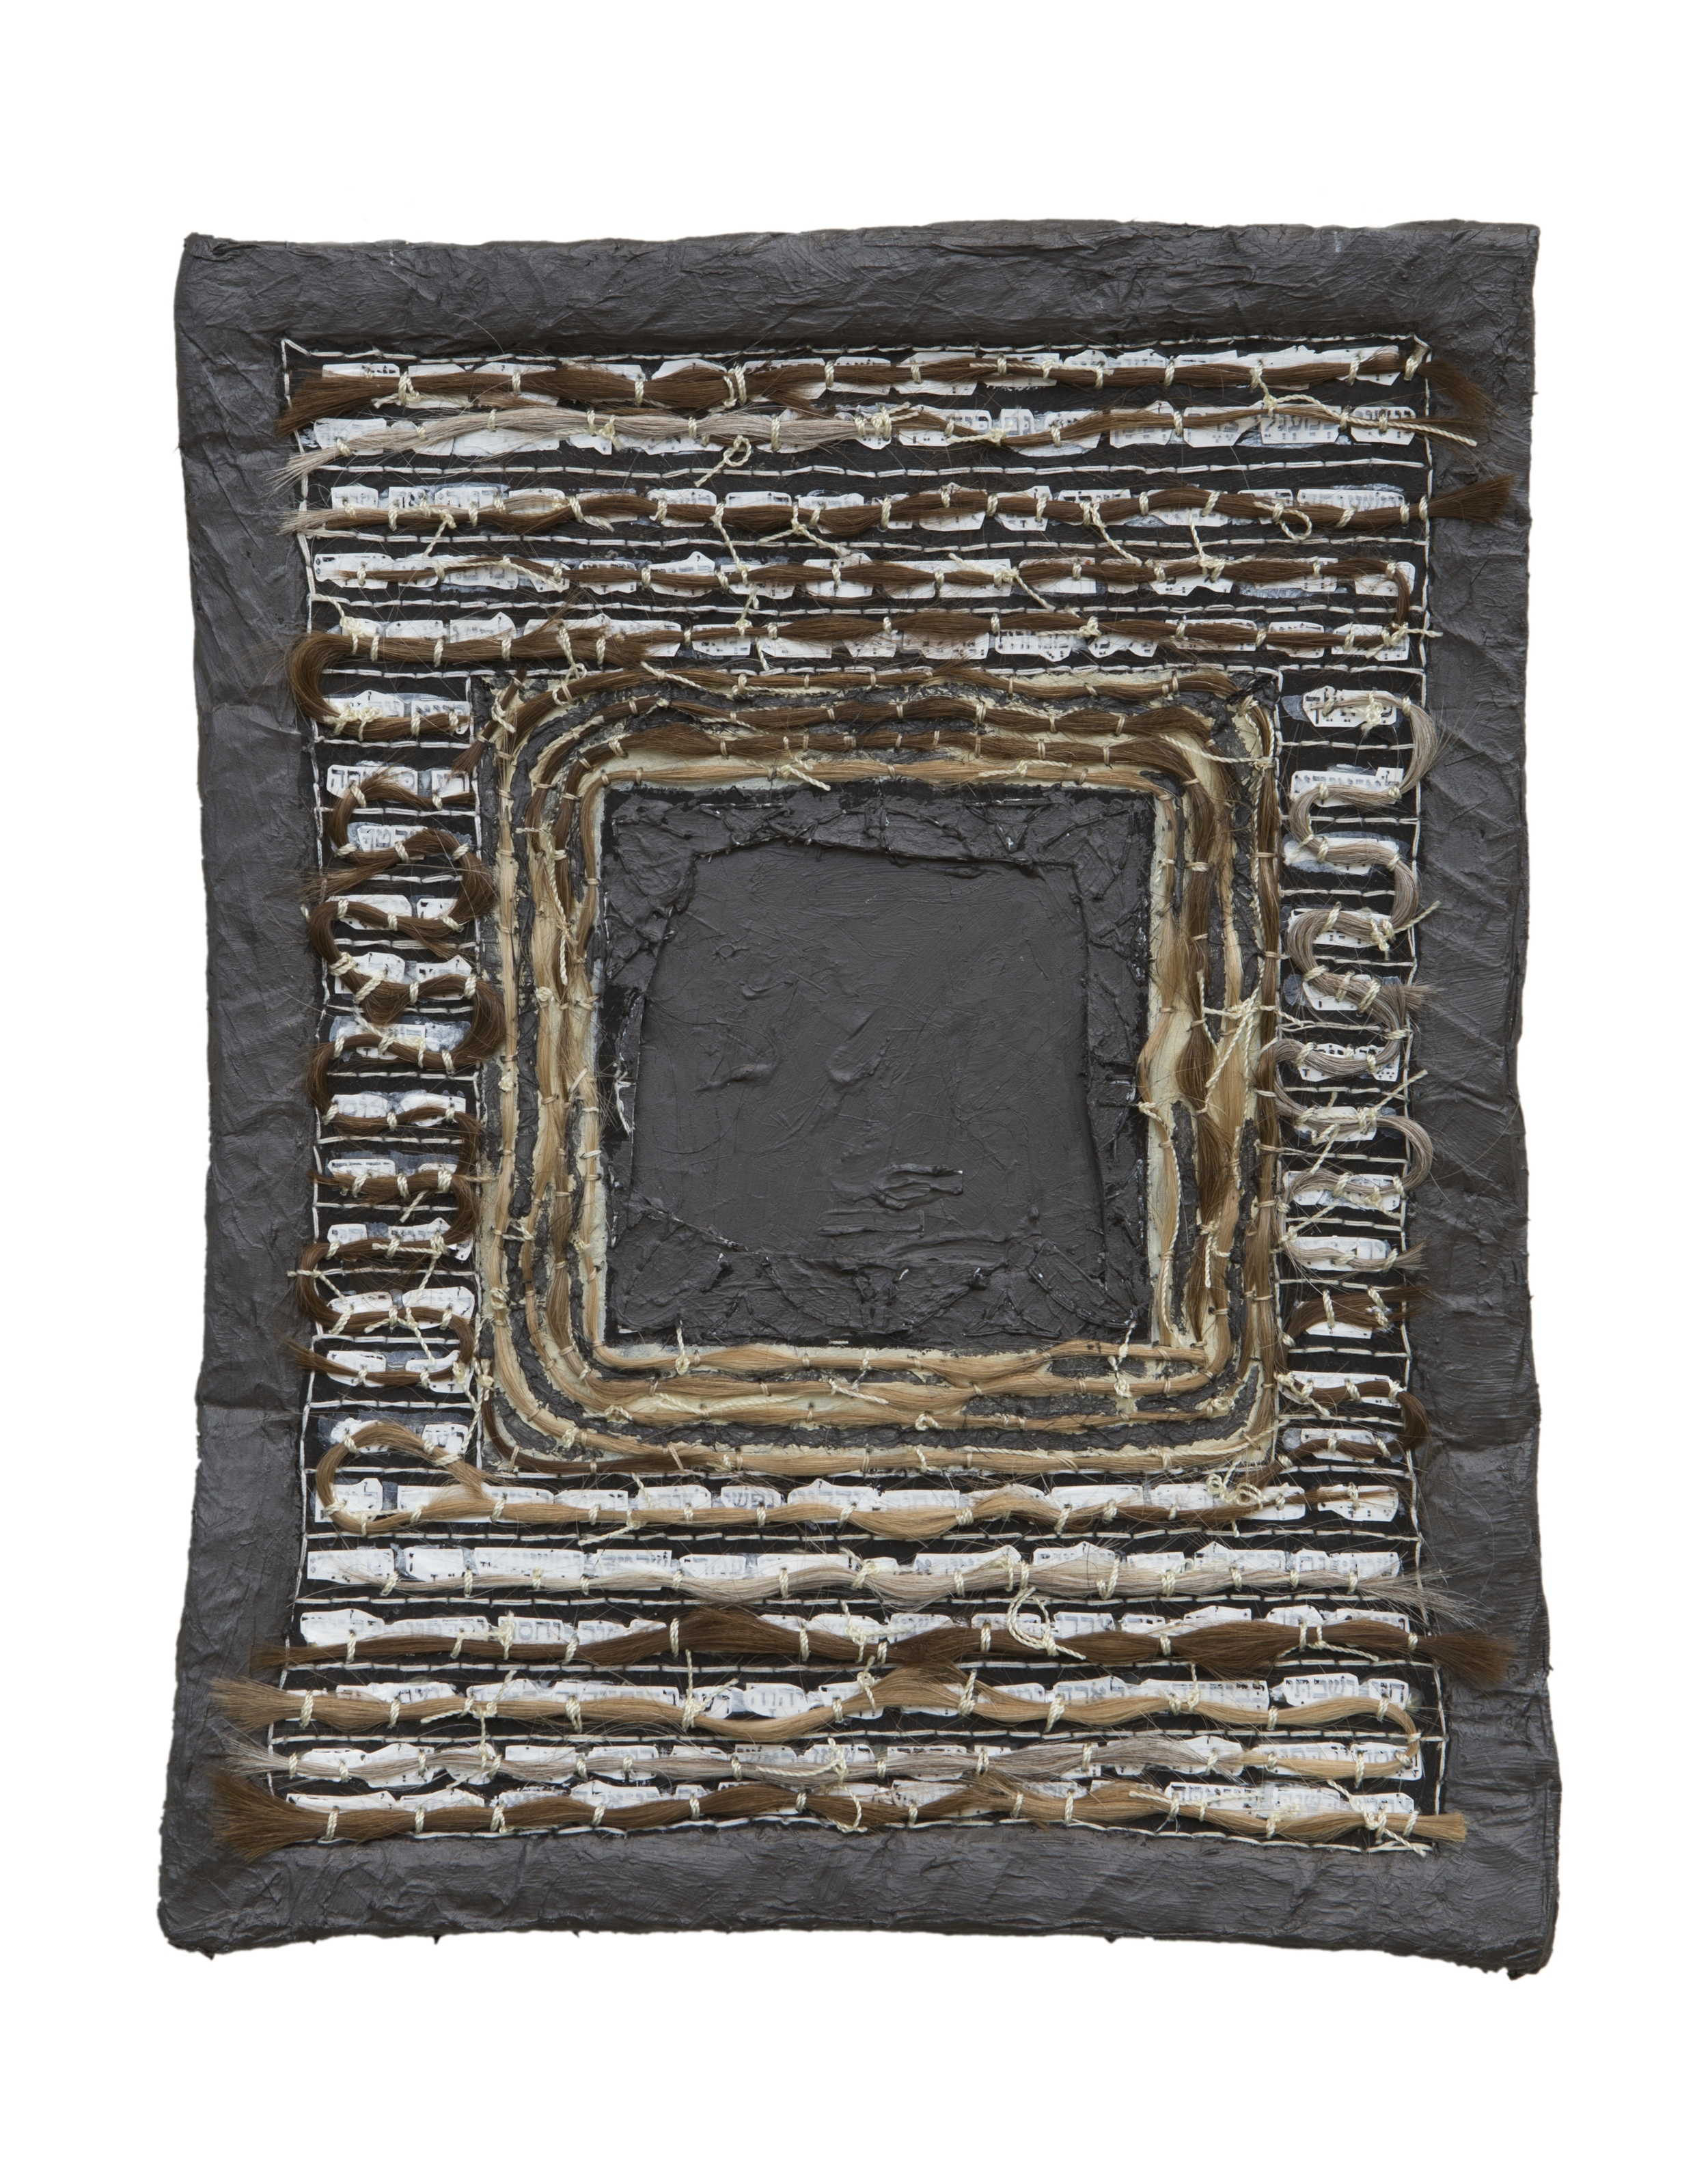 """Alphabets and Earth: Israel, mixed media, 14"""" by 11"""", 2014-2015."""